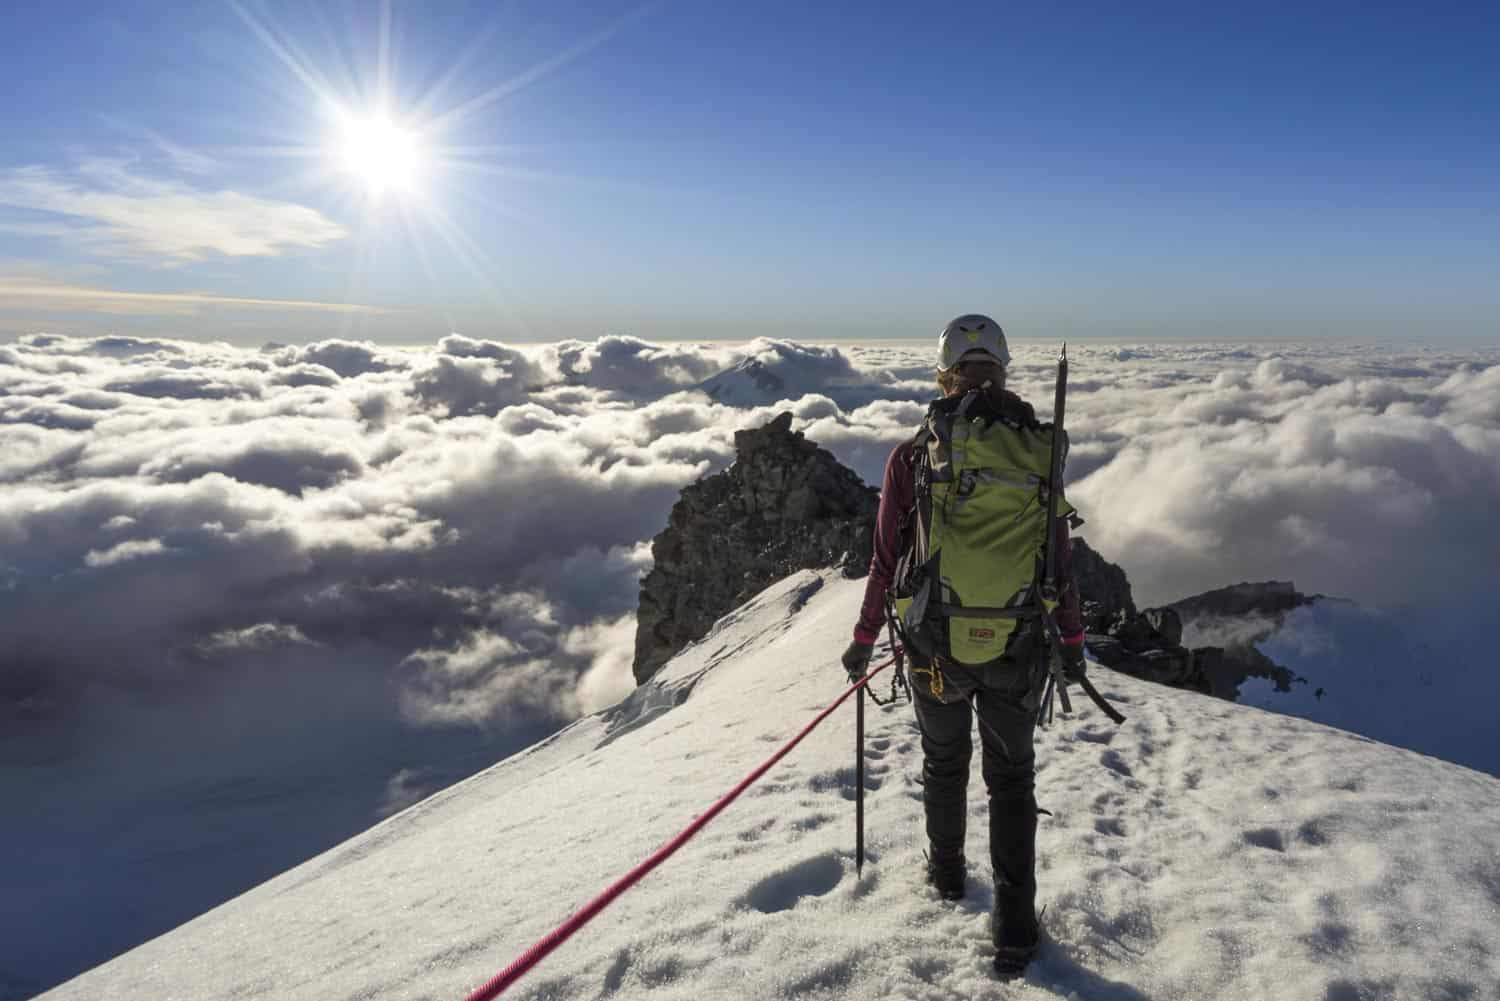 Self Mastery and Self Development Through Mountaineering